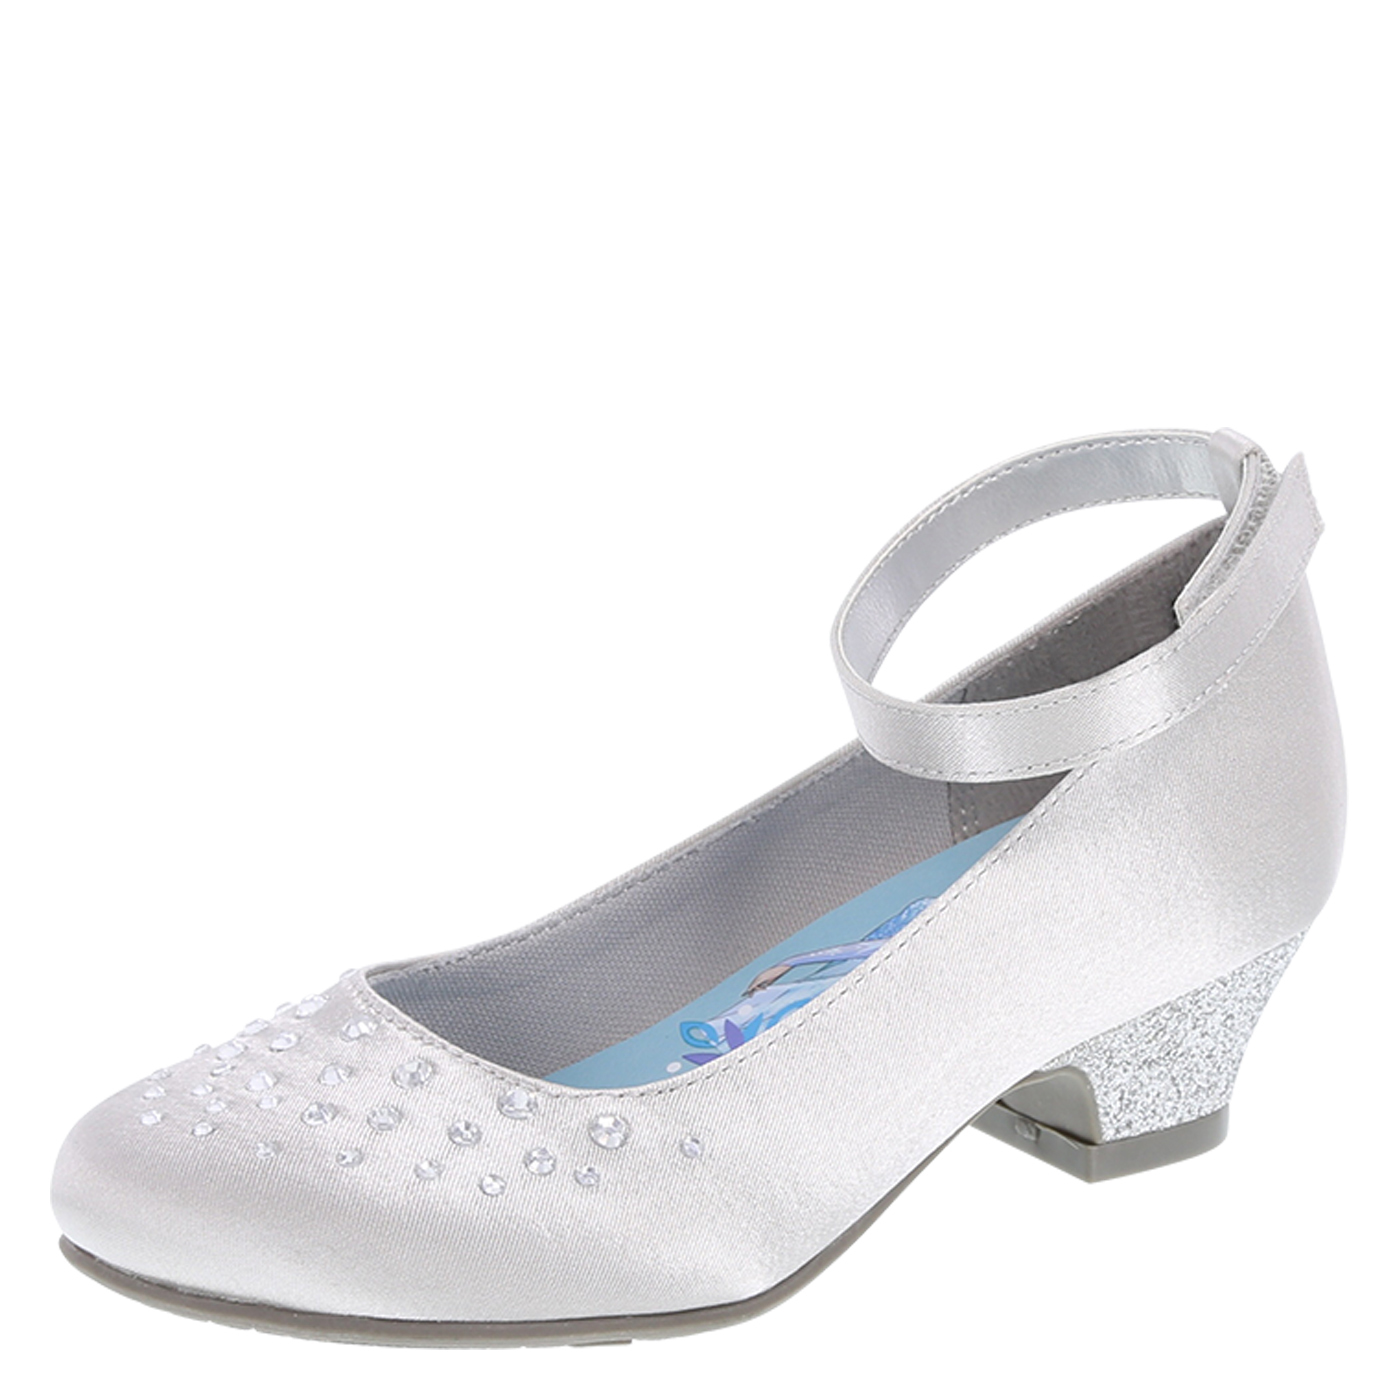 silver dress shoes girlsu0027 satin dress shoes, silver vmmuwbd